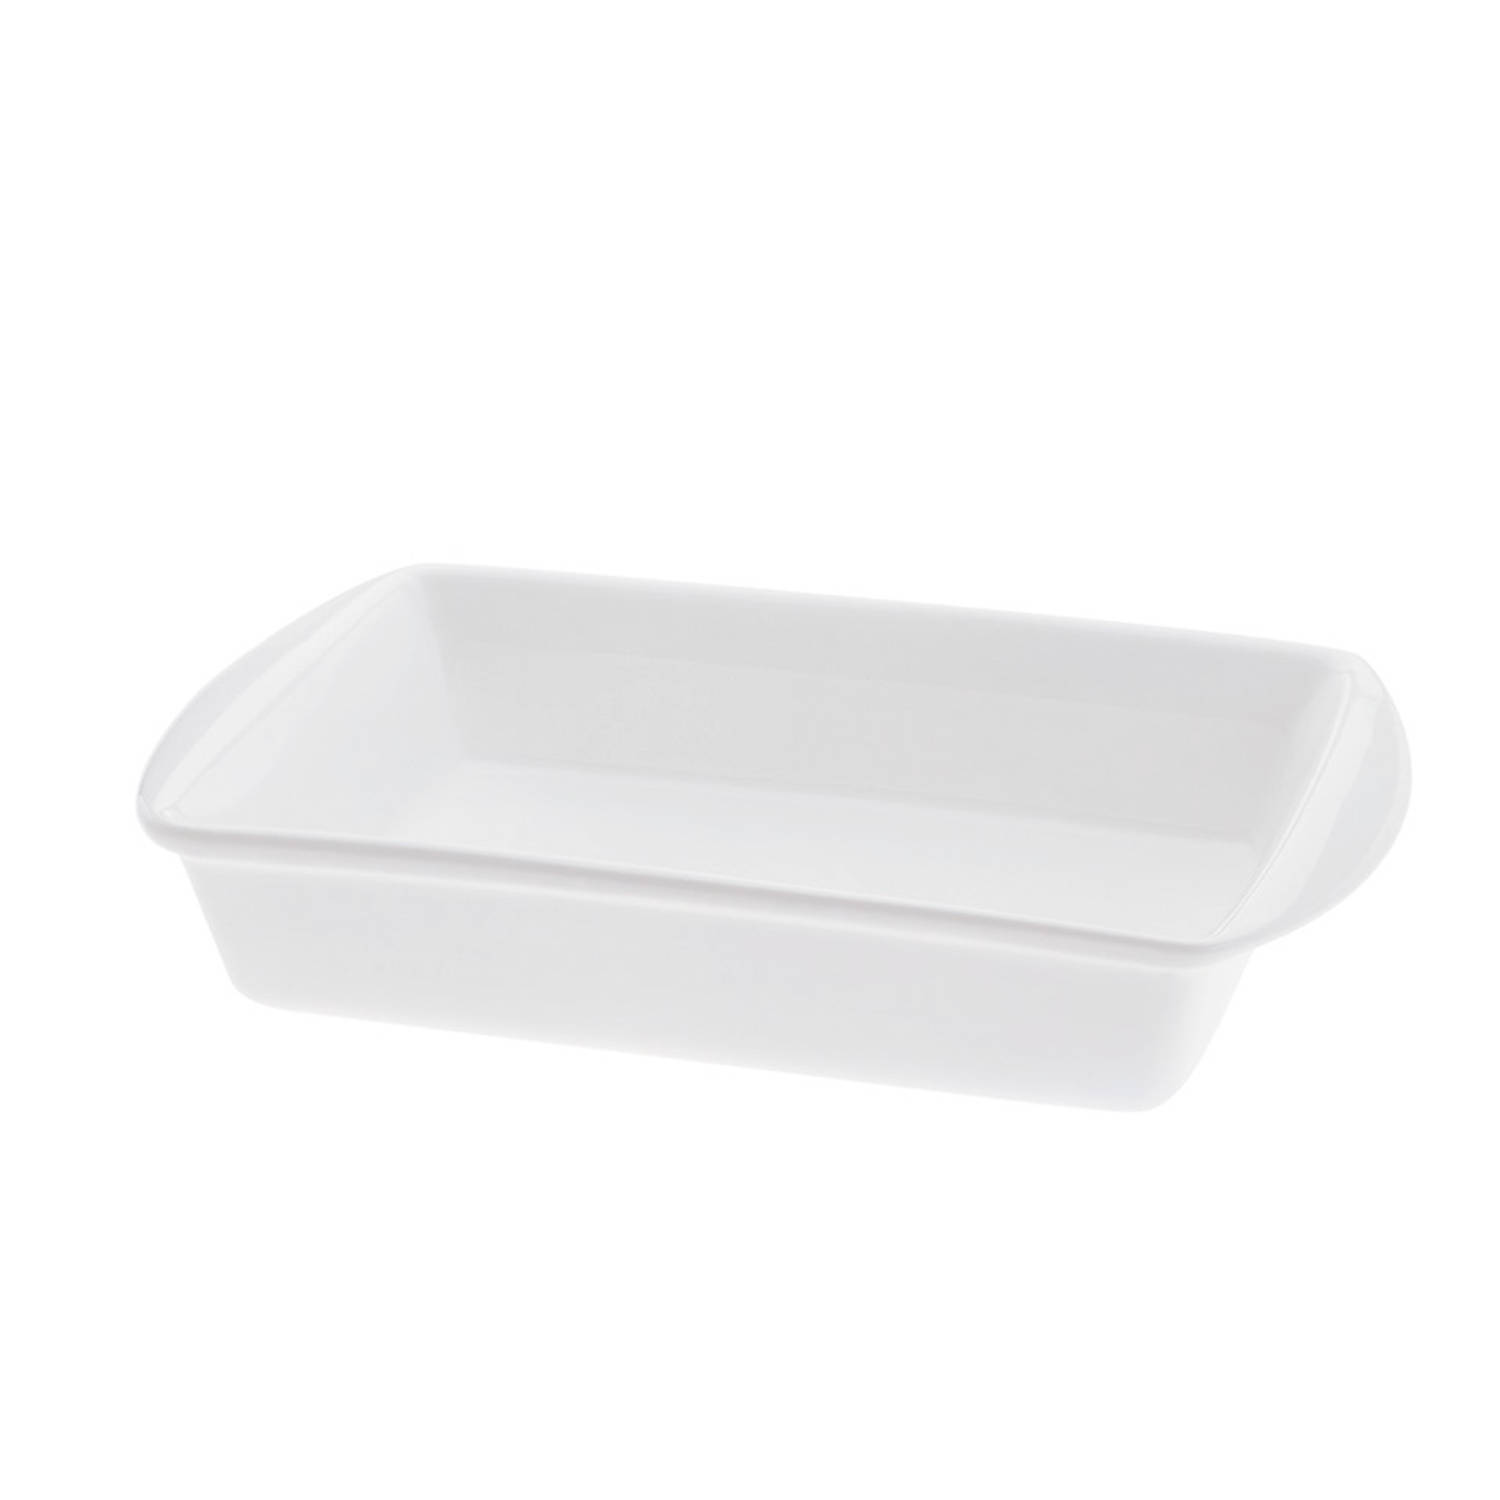 Maxwell and Williams White Basics ovenschaal - Ø 43 cm